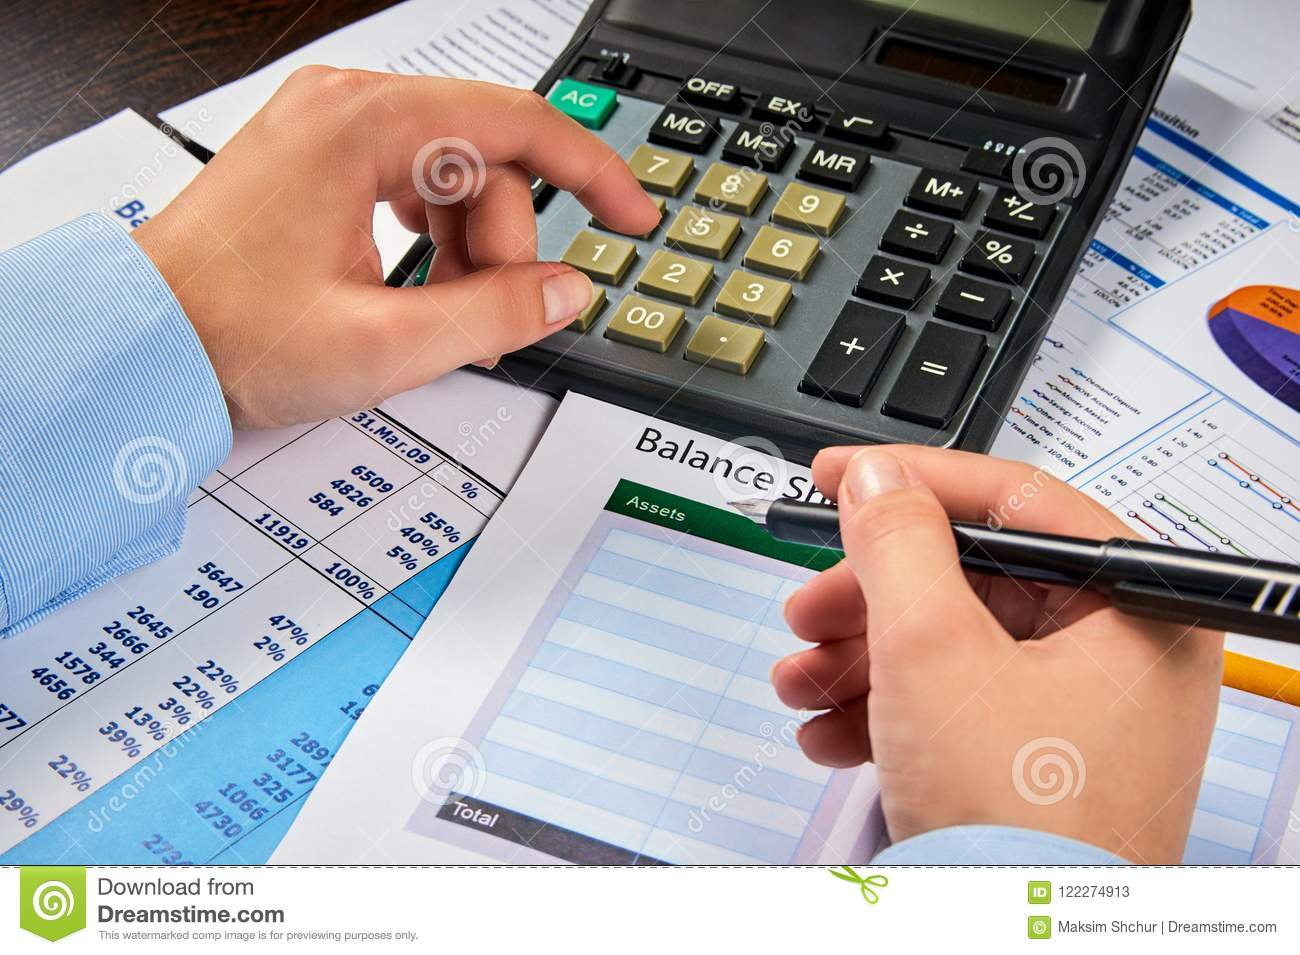 count in balance sheet summary stock image image of chart growth